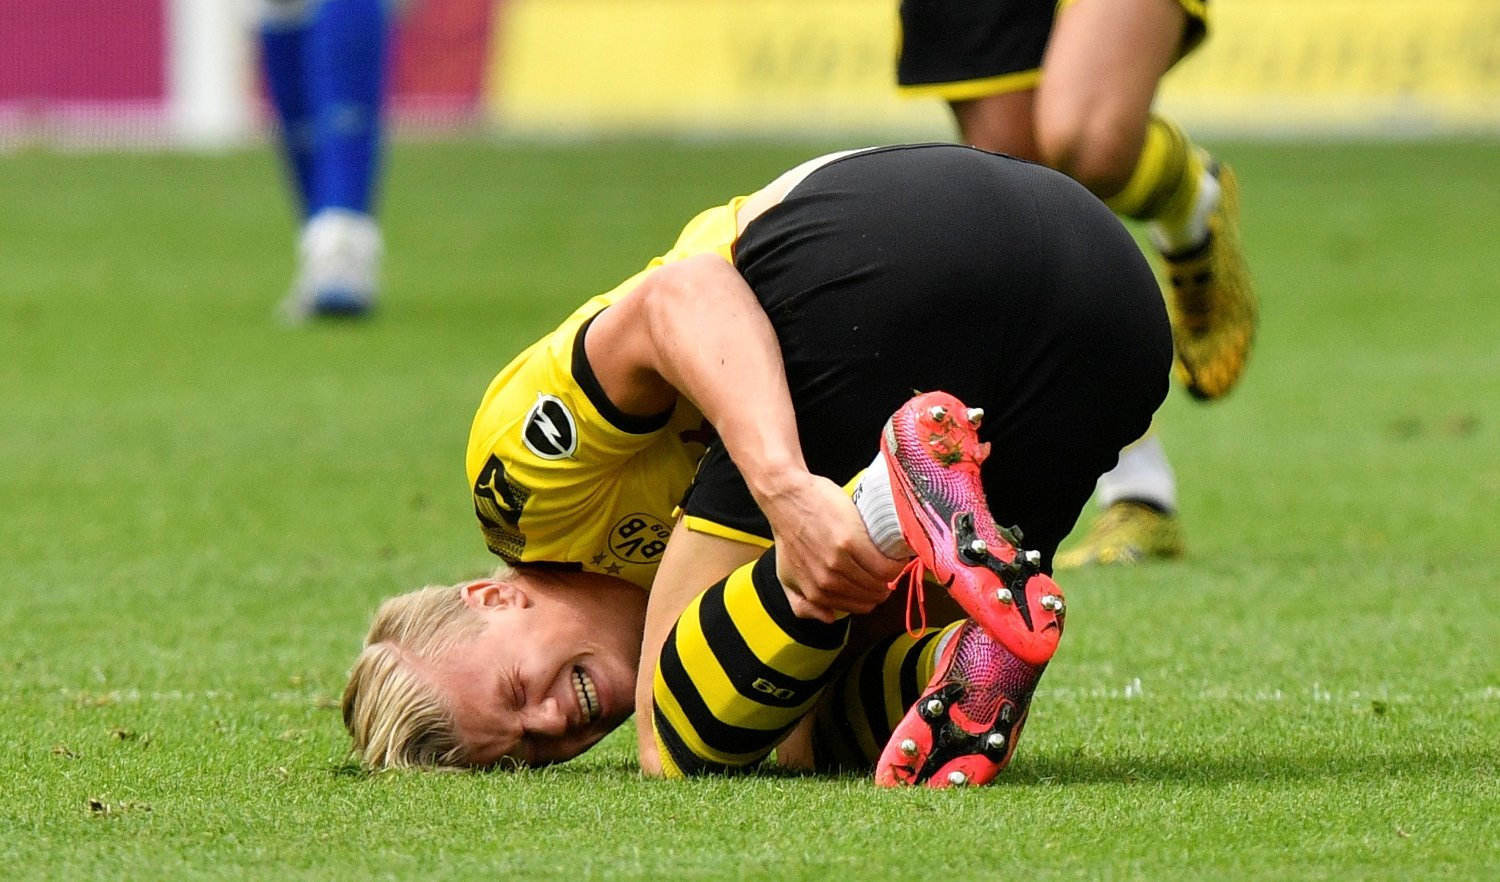 Soccer Football - Bundesliga - Borussia Dortmund v Schalke 04 - Signal Iduna Park, Dortmund, Germany - May 16, 2020 Dortmund's Erling Braut Haaland down injured, as play resumes behind closed doors following the outbreak of the coronavirus disease Martin Meissner/Pool via REUTERS DFL regulations prohibit any use of photographs as image sequences and/or quasi-video